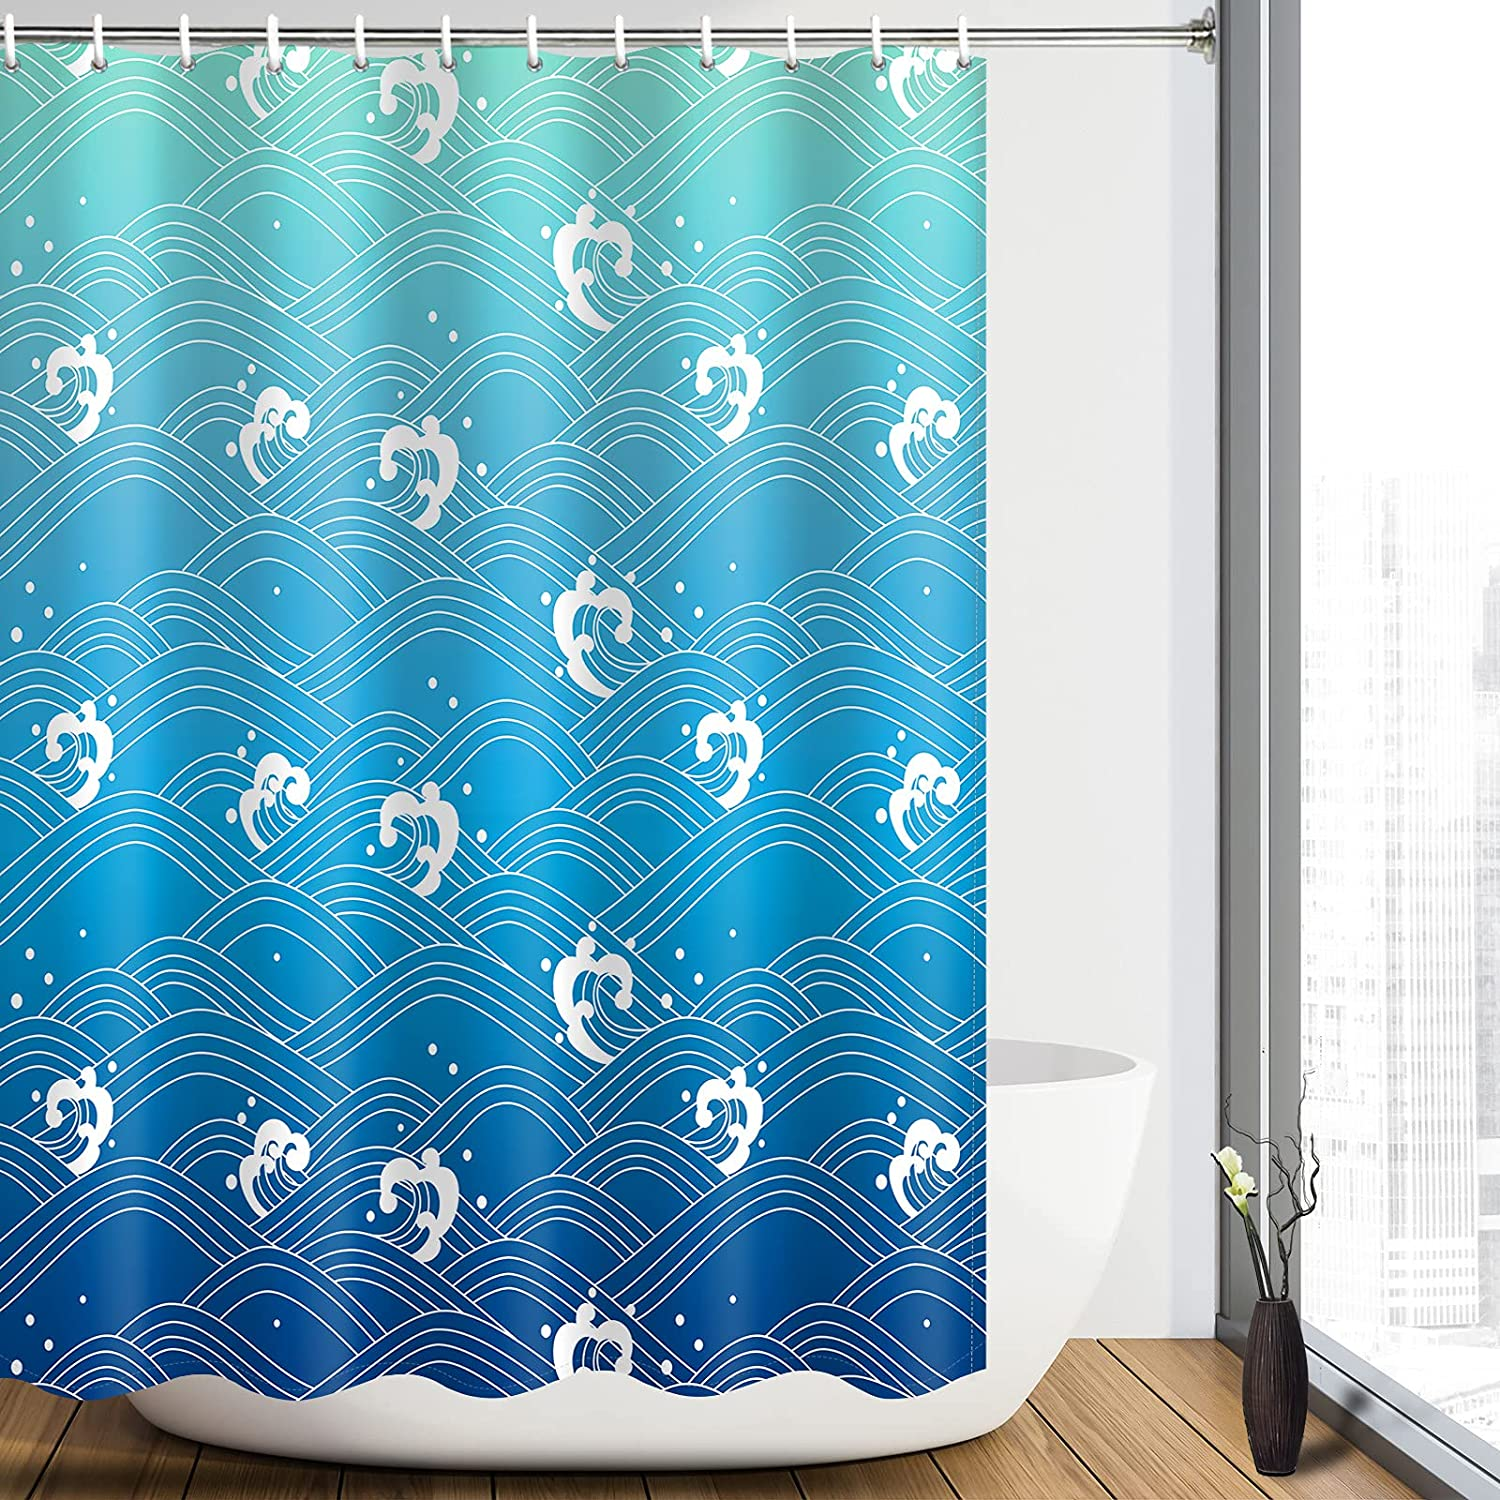 Heopapin Striped Shower Curtain Abstract Challenge the lowest price of Japan Spray Ranking TOP14 Se